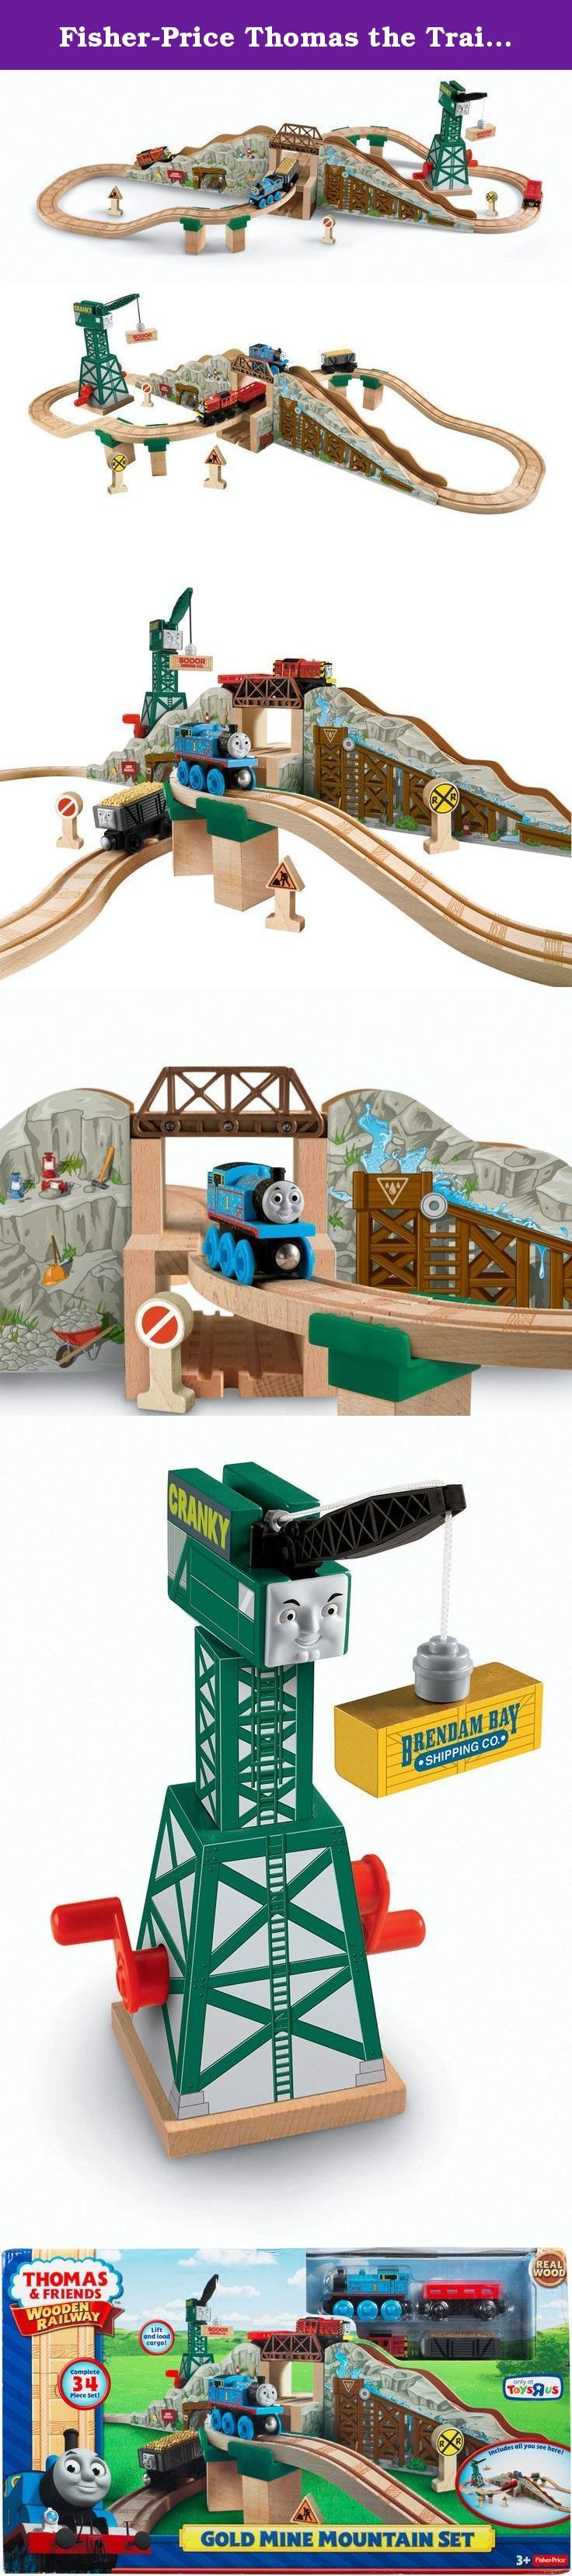 Fisher-Price Thomas the Train Gold Mine Mountain Set. Discover Gold with Thomas and his friends! Thomas and Salty are working hard at the mine! Cranky unloads their special cargo and they chug over the mountain for another load. Little engineers will have hours of fun creating adventures with this Gold Mine Mountain Set.